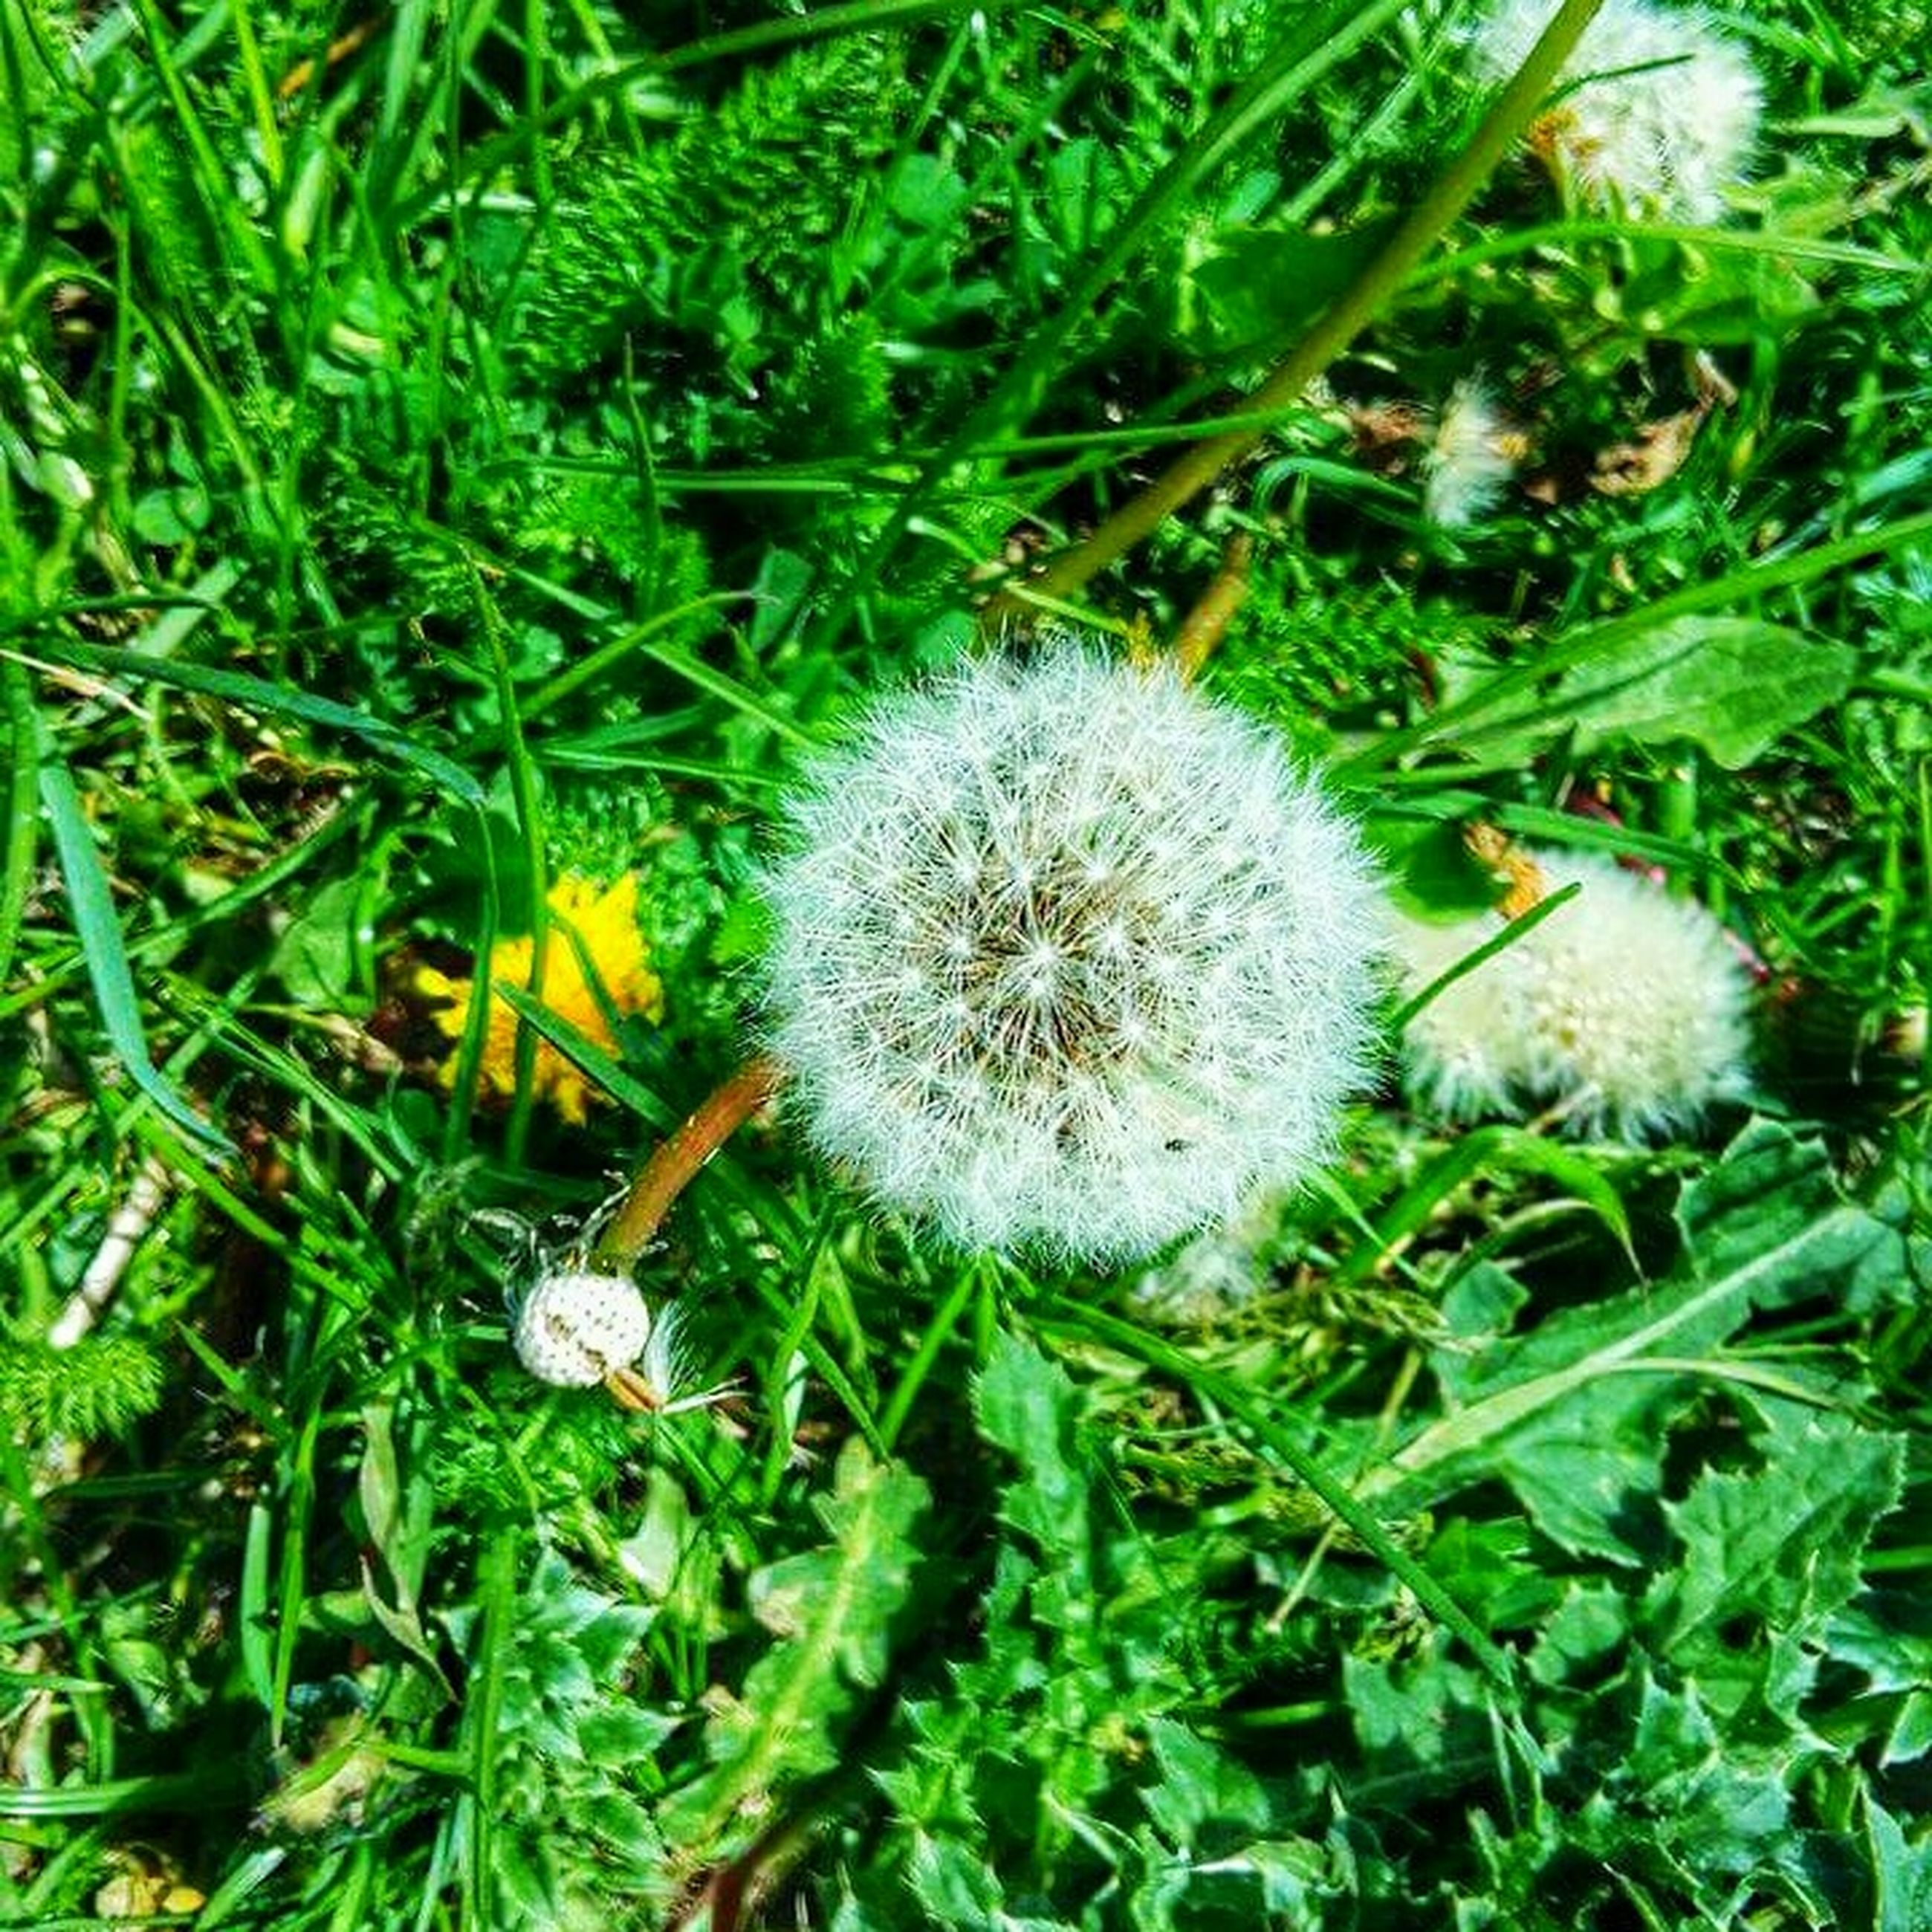 dandelion, fragility, growth, flower, close-up, freshness, plant, nature, beauty in nature, green color, single flower, softness, day, field, uncultivated, springtime, flower head, outdoors, blooming, focus on foreground, in bloom, no people, tranquility, grassy, blossom, dandelion seed, growing